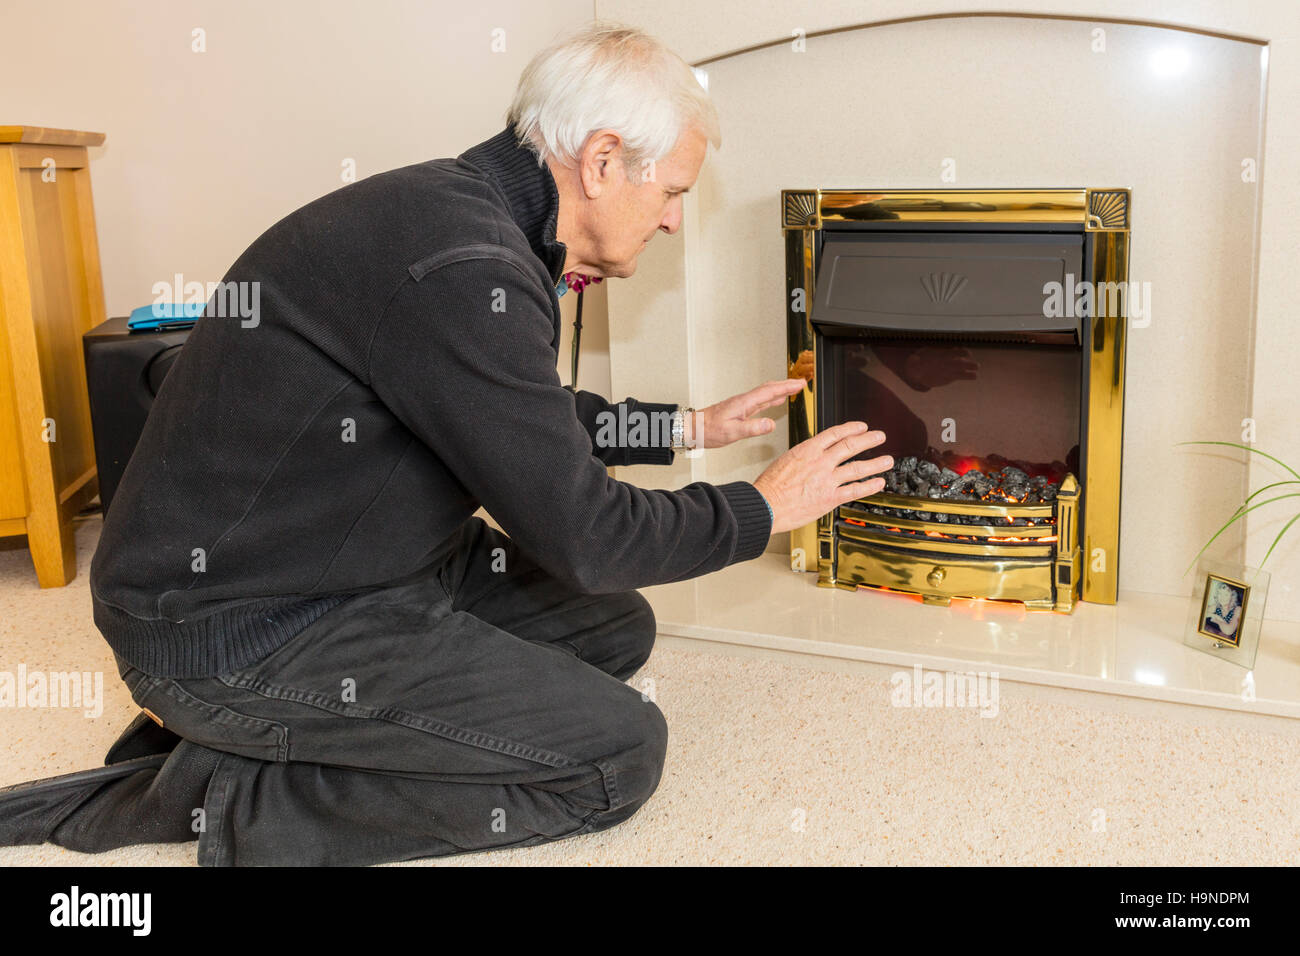 OAP trying to keep warm warming hands near fire keeping bills down cannot afford heating bill high gas energy bills - Stock Image